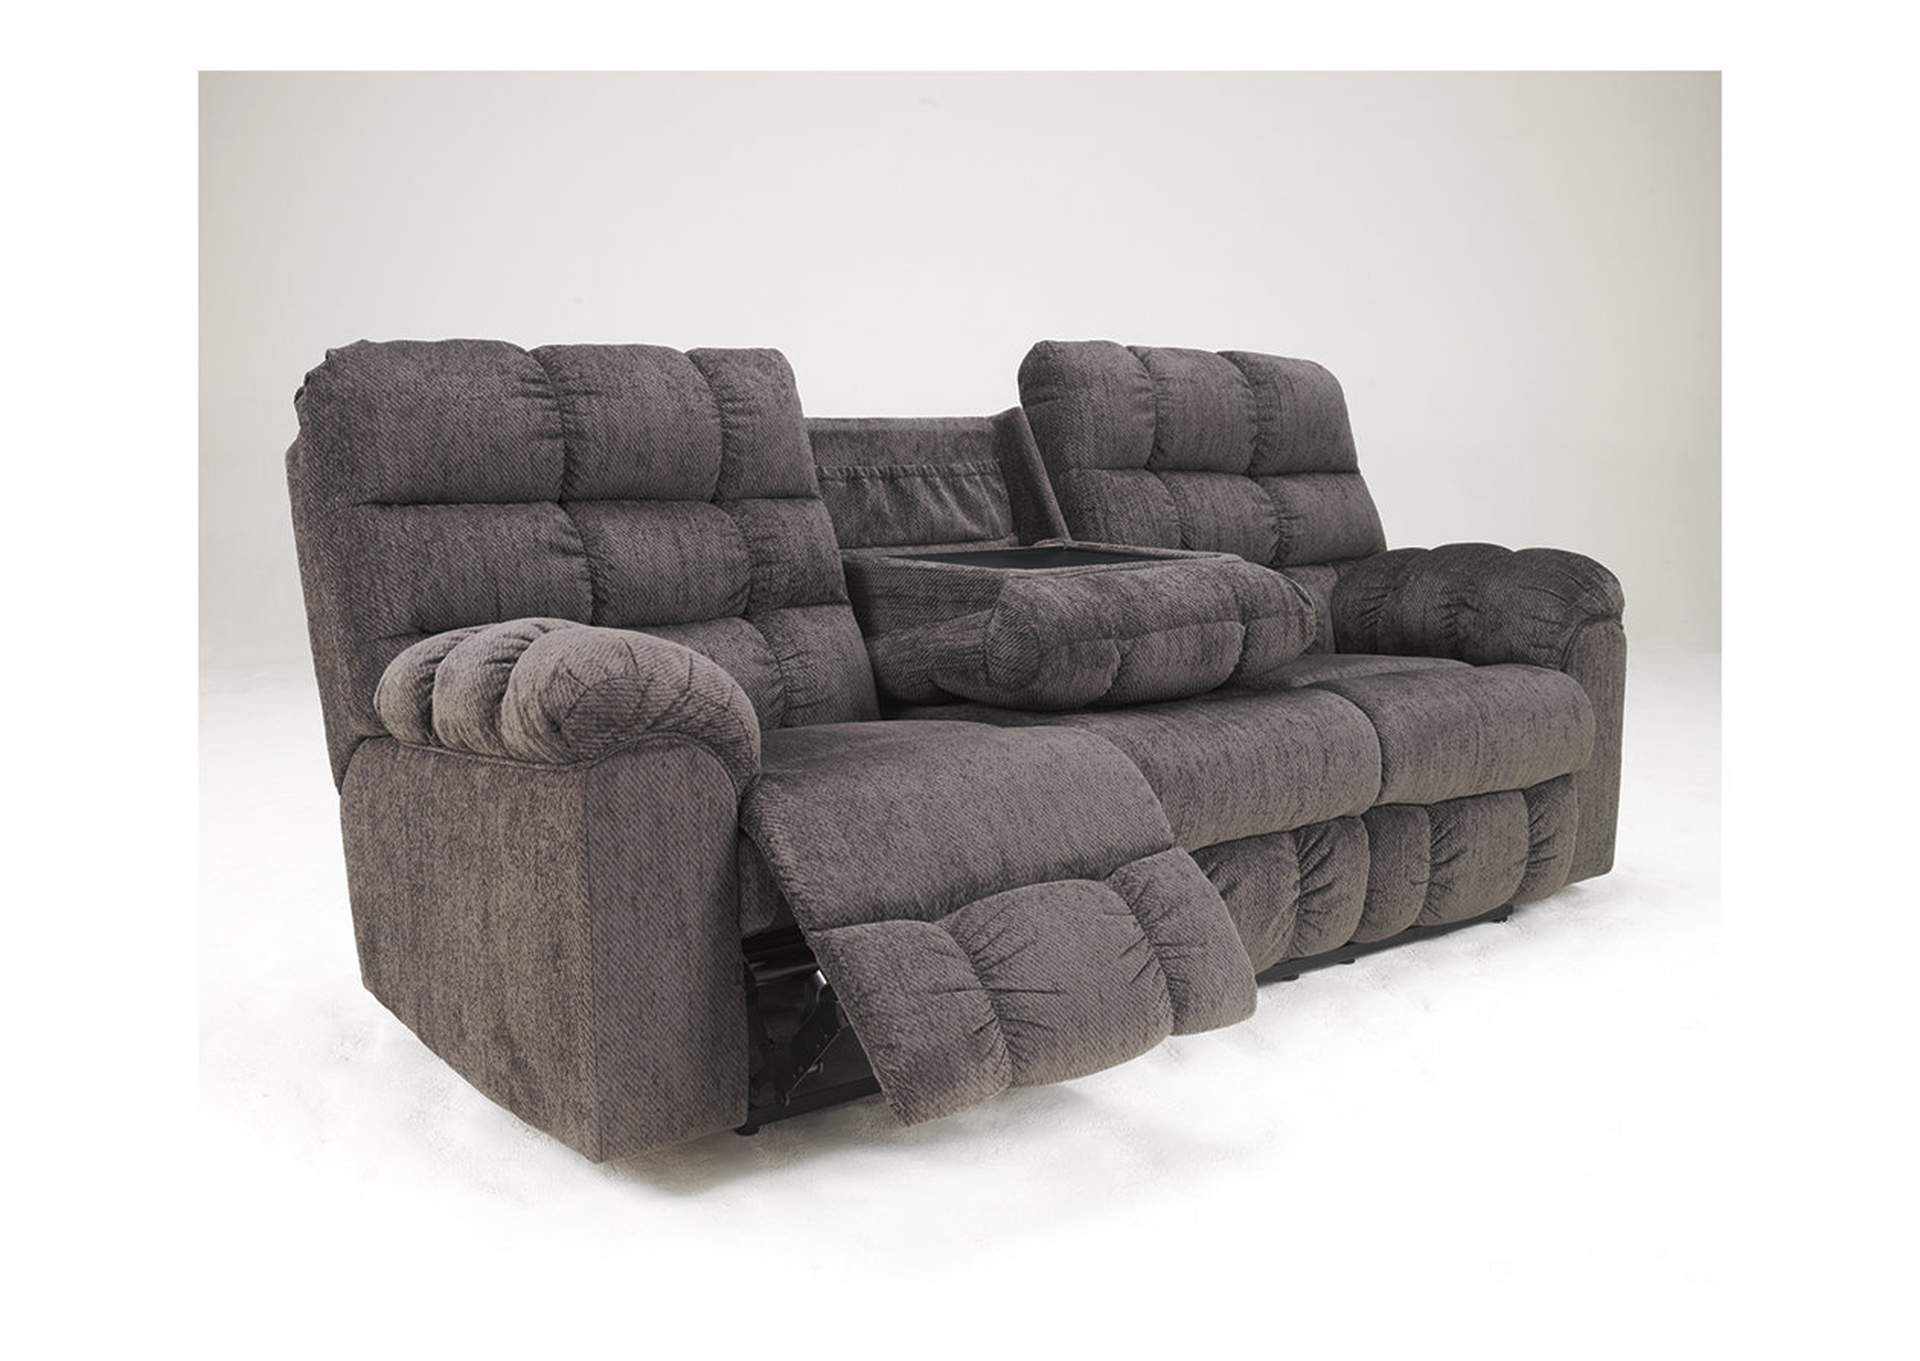 Acieona Slate Reclining Sofa w/ Drop Down Table,Signature Design By Ashley